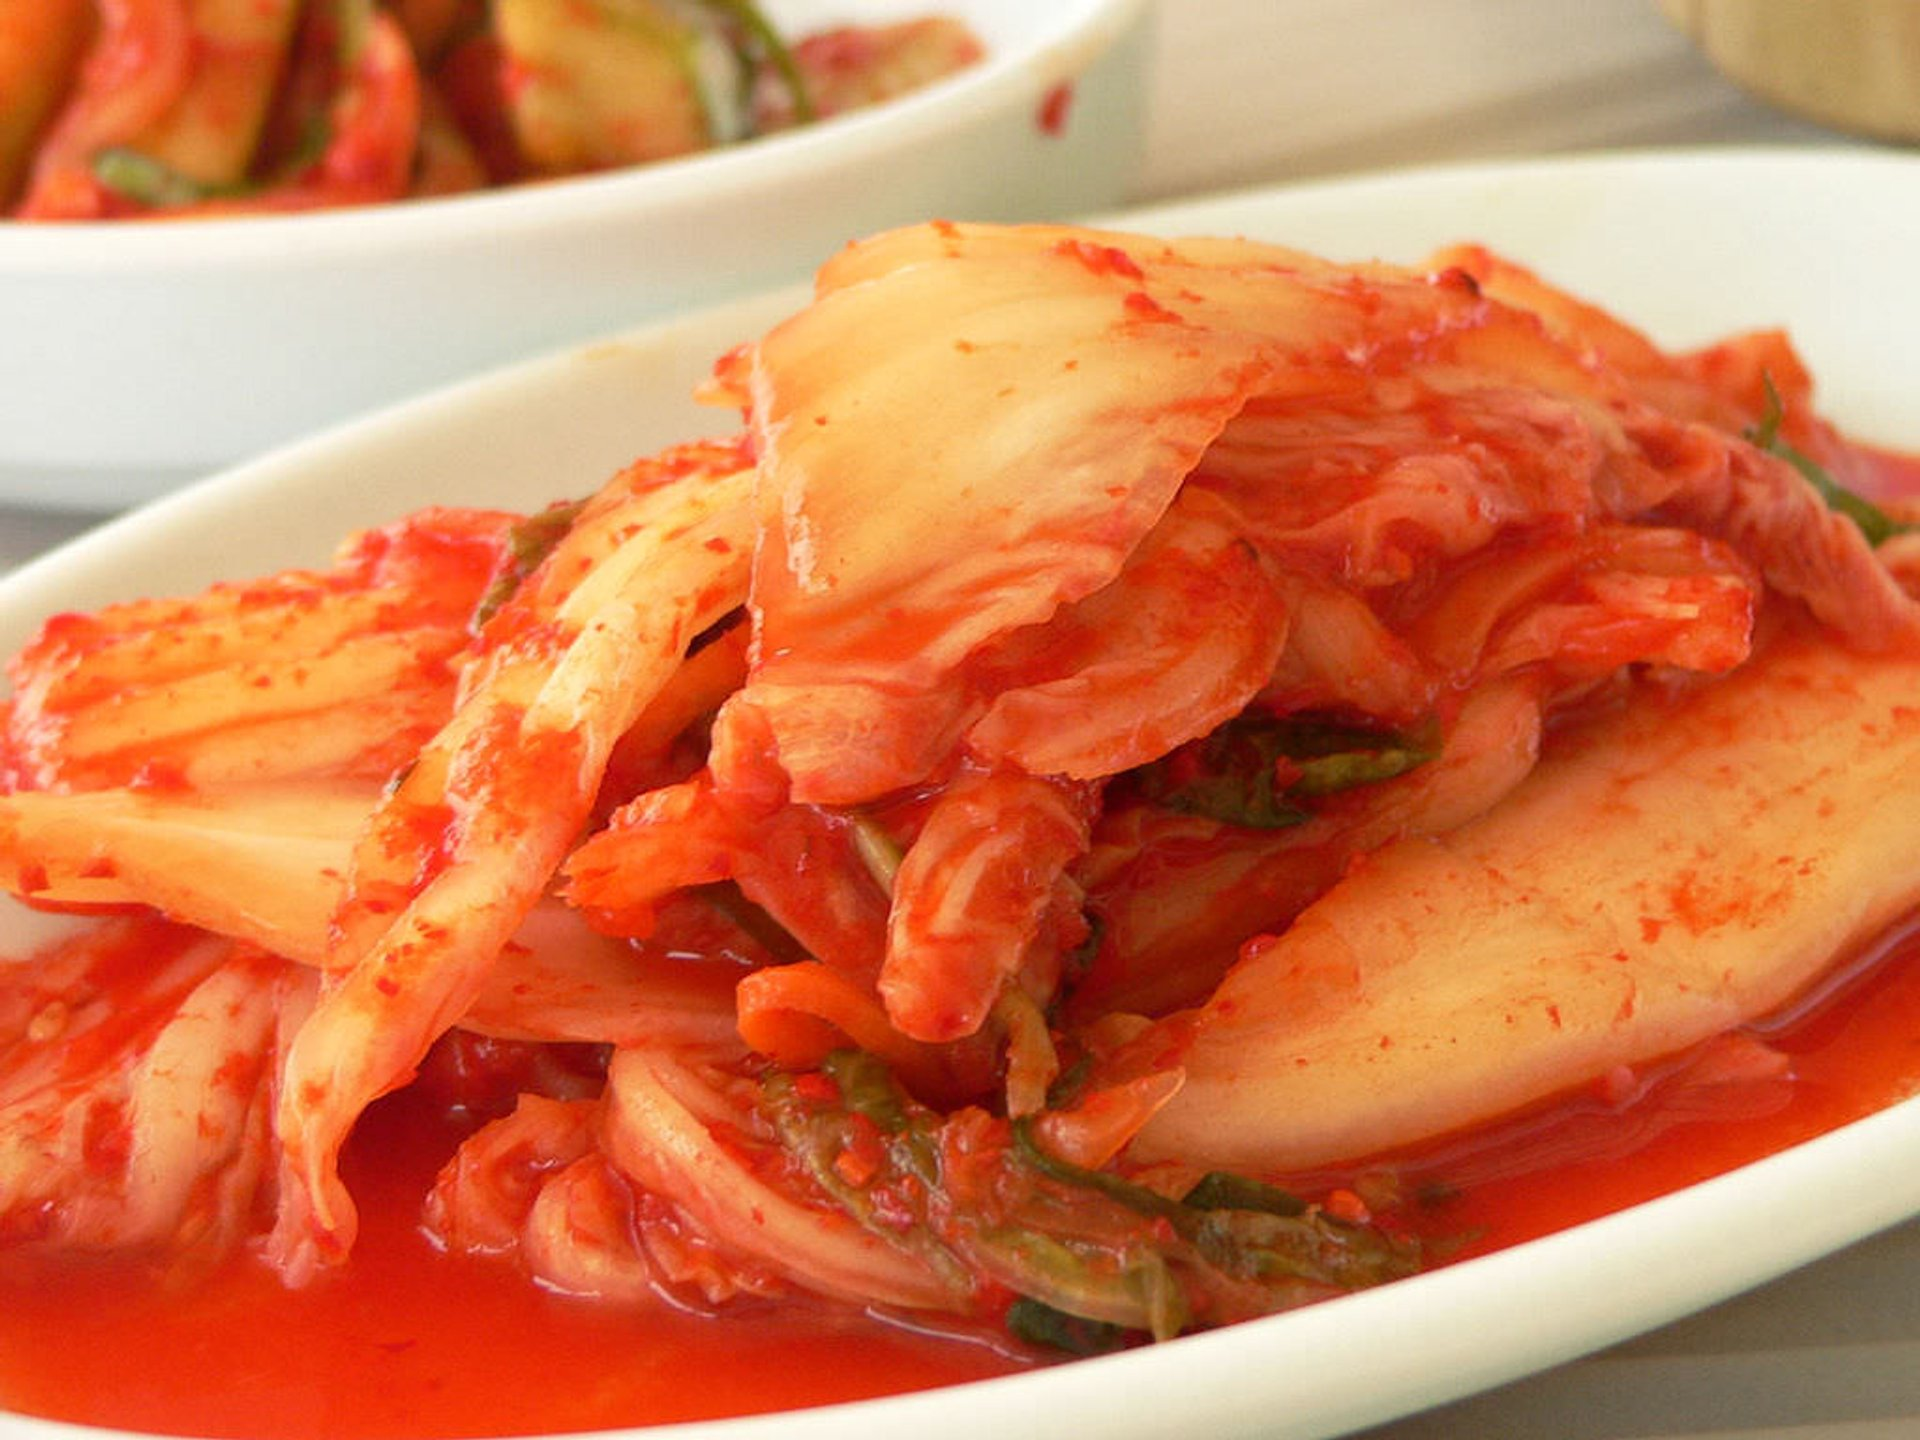 Plate of kimchi 2019